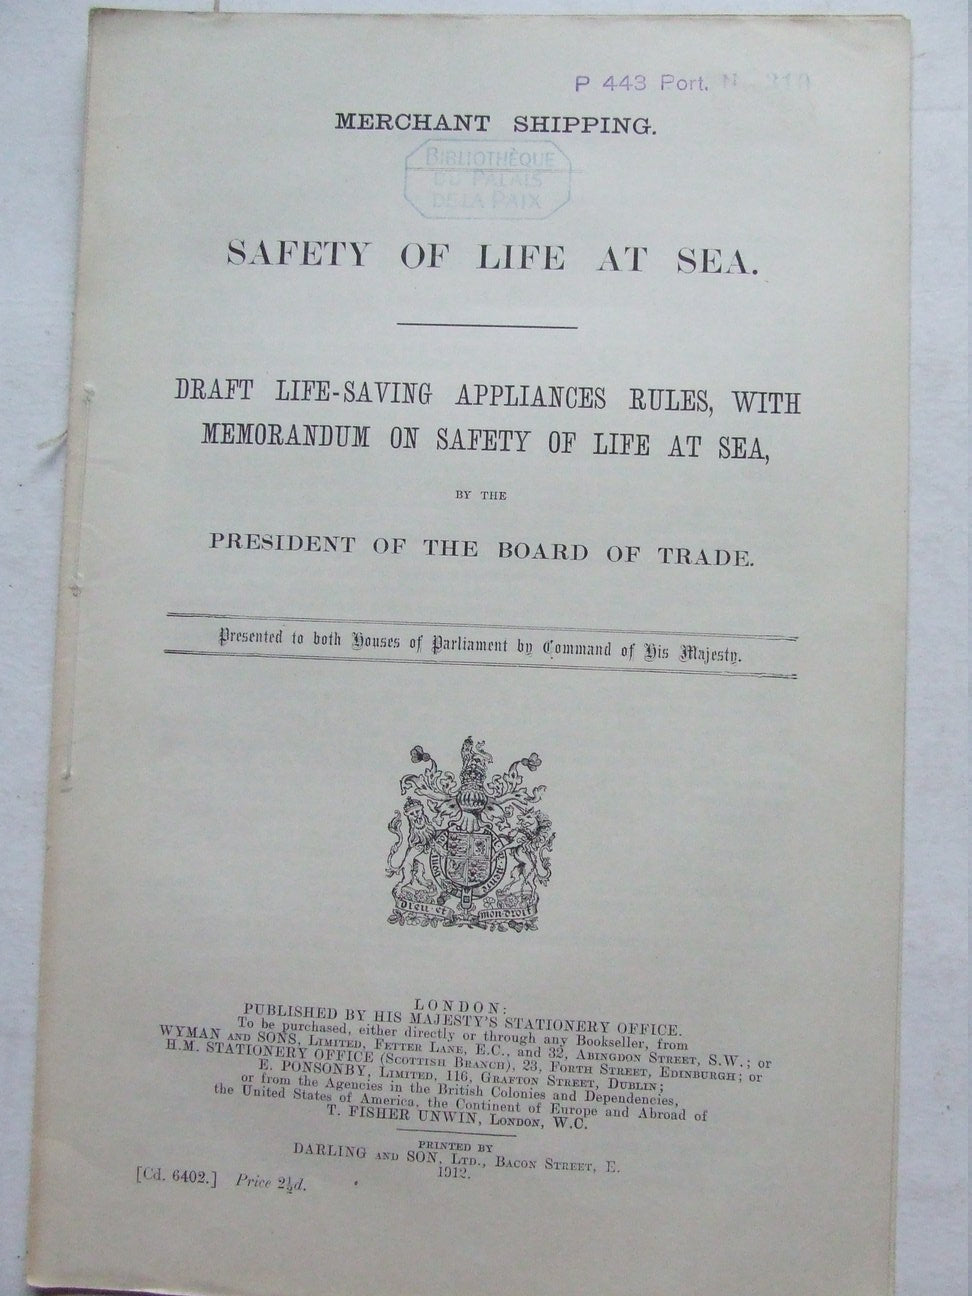 Safety of Life at Sea - draft life-saving appliances rules